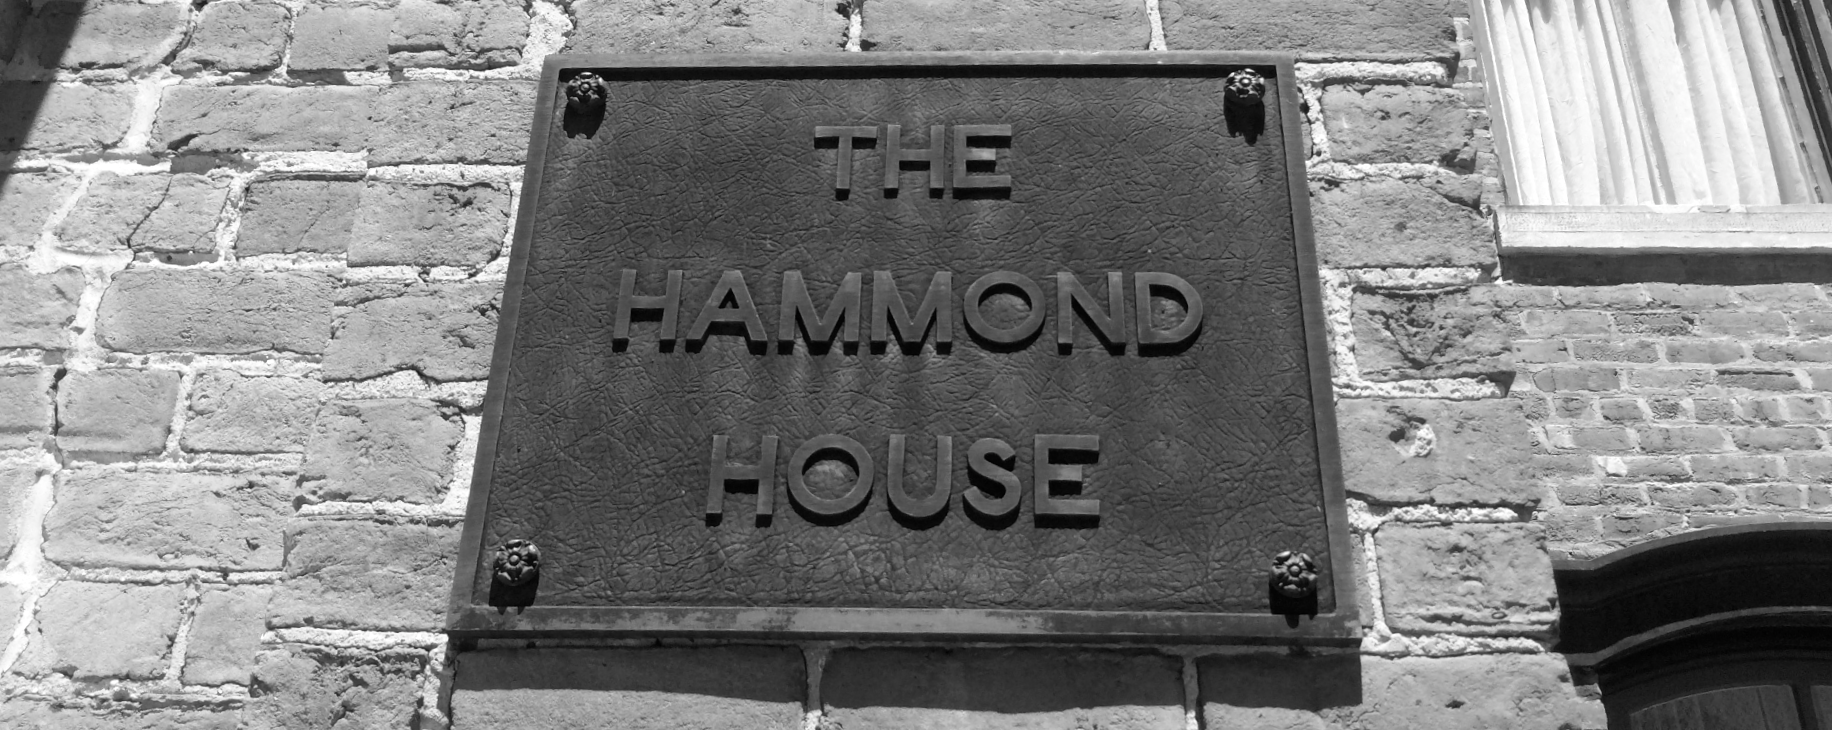 Hammond House, Calvert